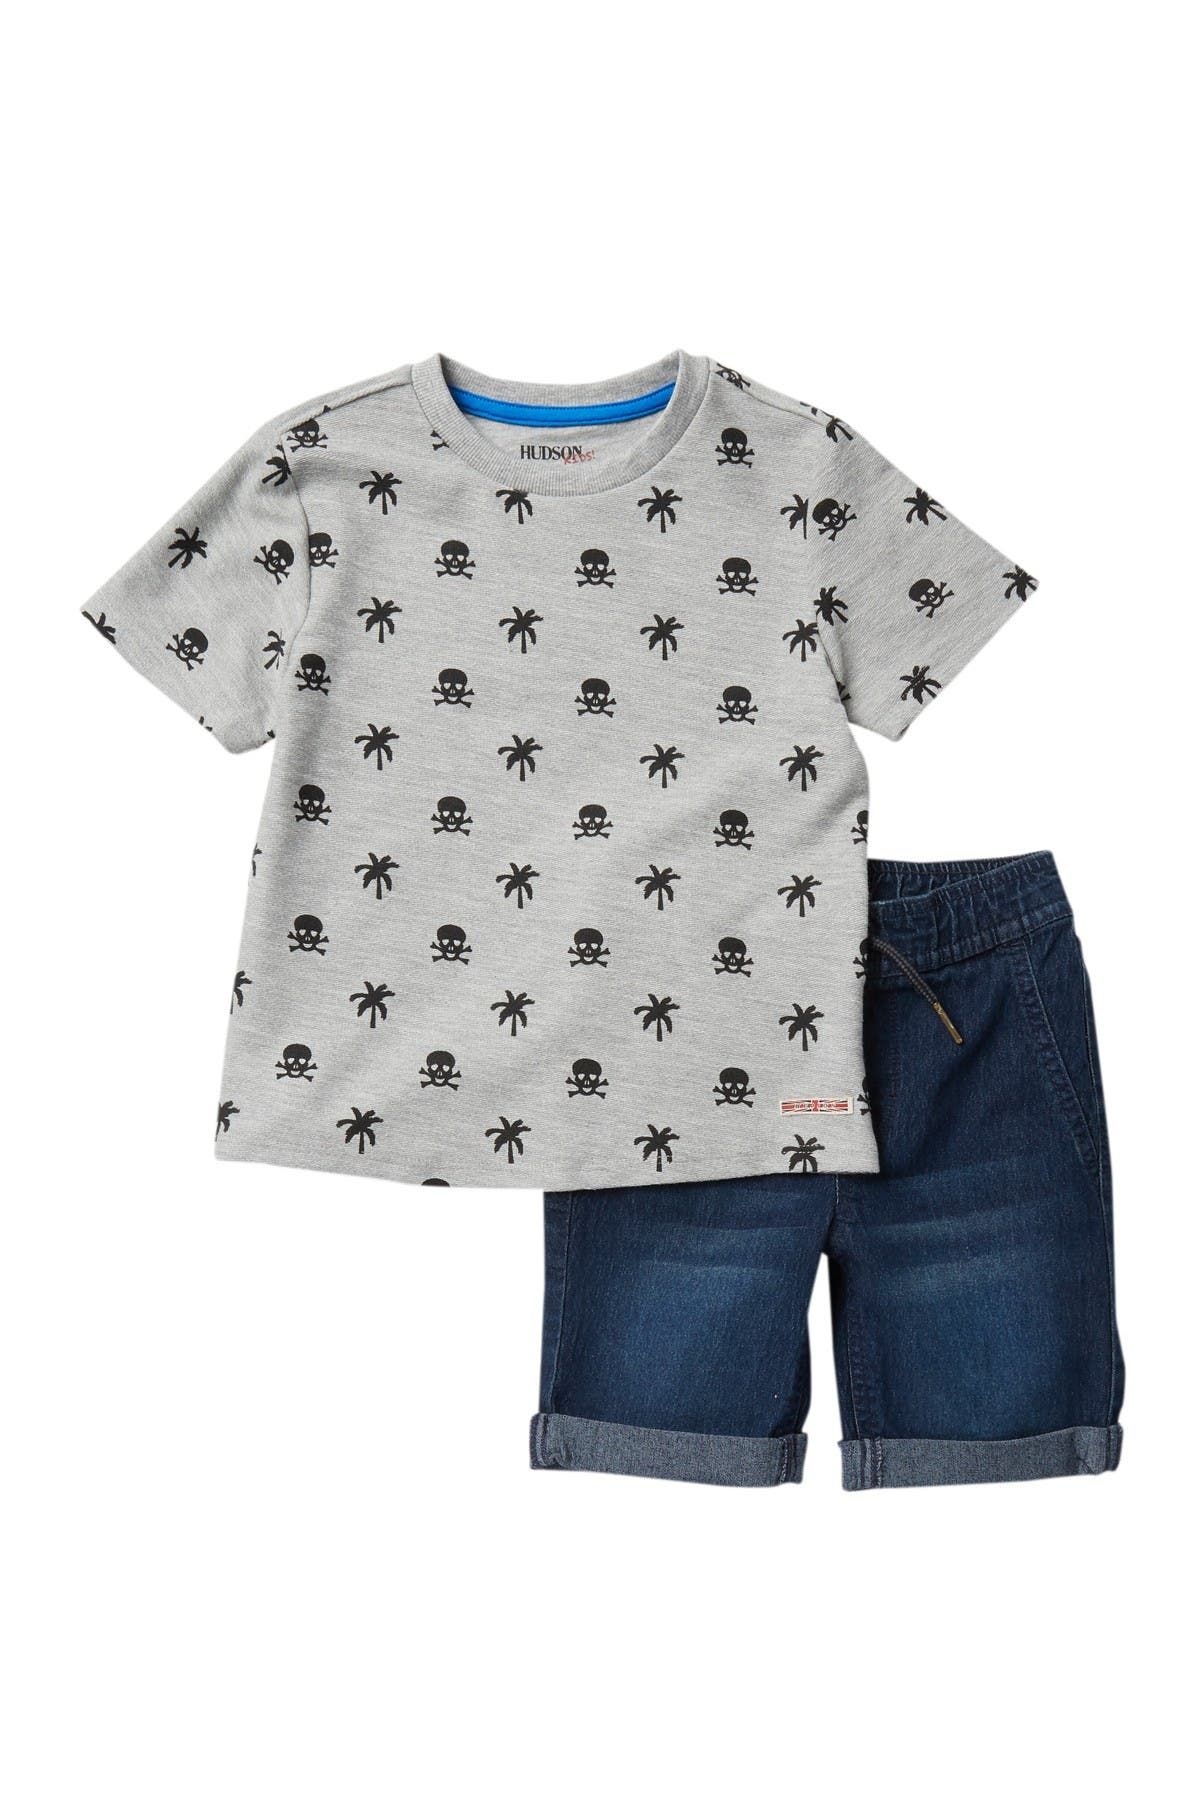 Image of HUDSON Jeans Printed French Terry 2-Piece Set